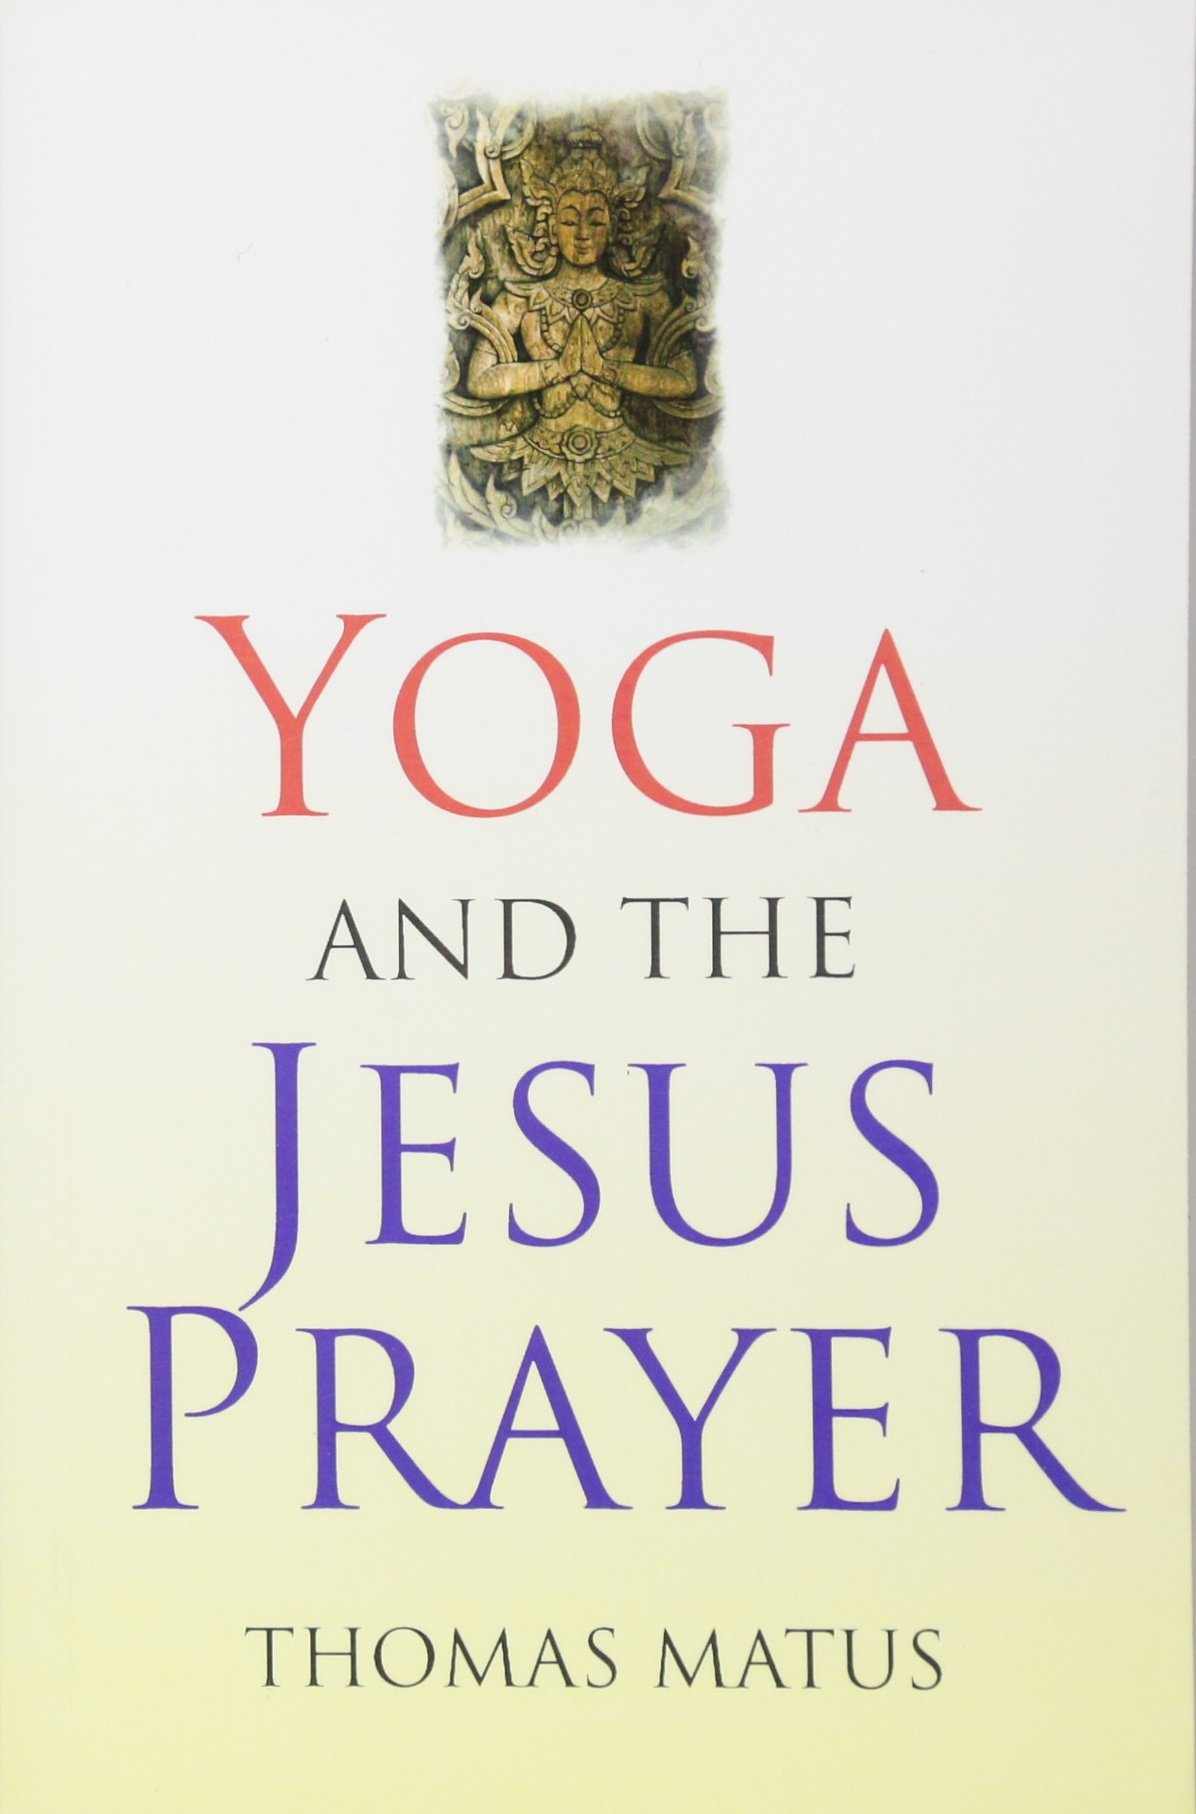 Yoga and the Jesus Prayer: Thomas Matus: 9781846942853: Amazon.com: Books